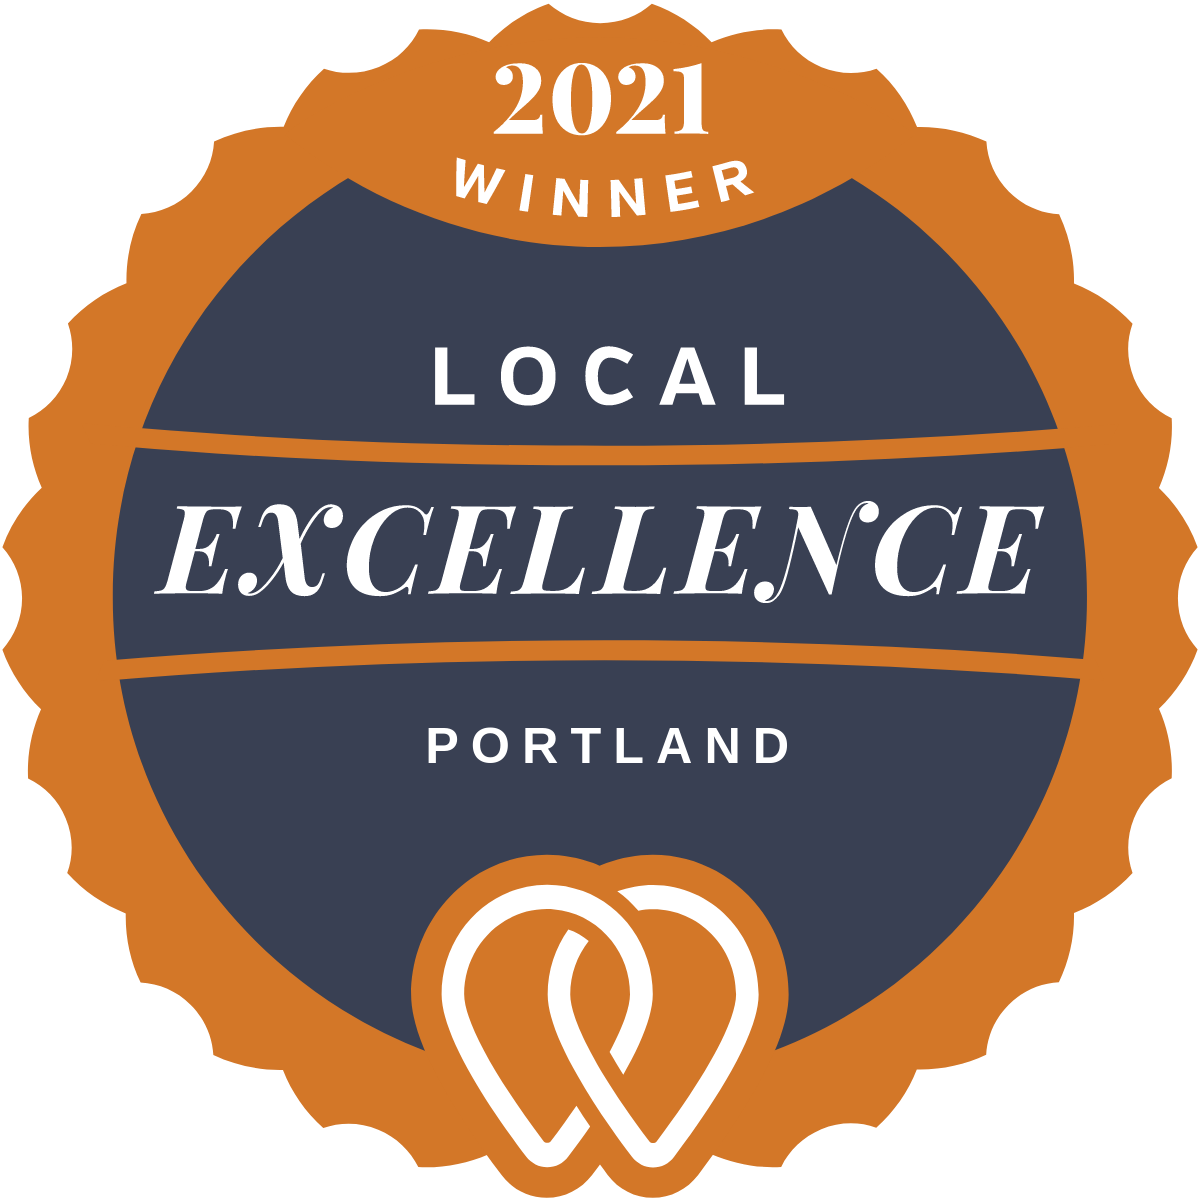 2021 Local Excellence Winner in Portland, OR